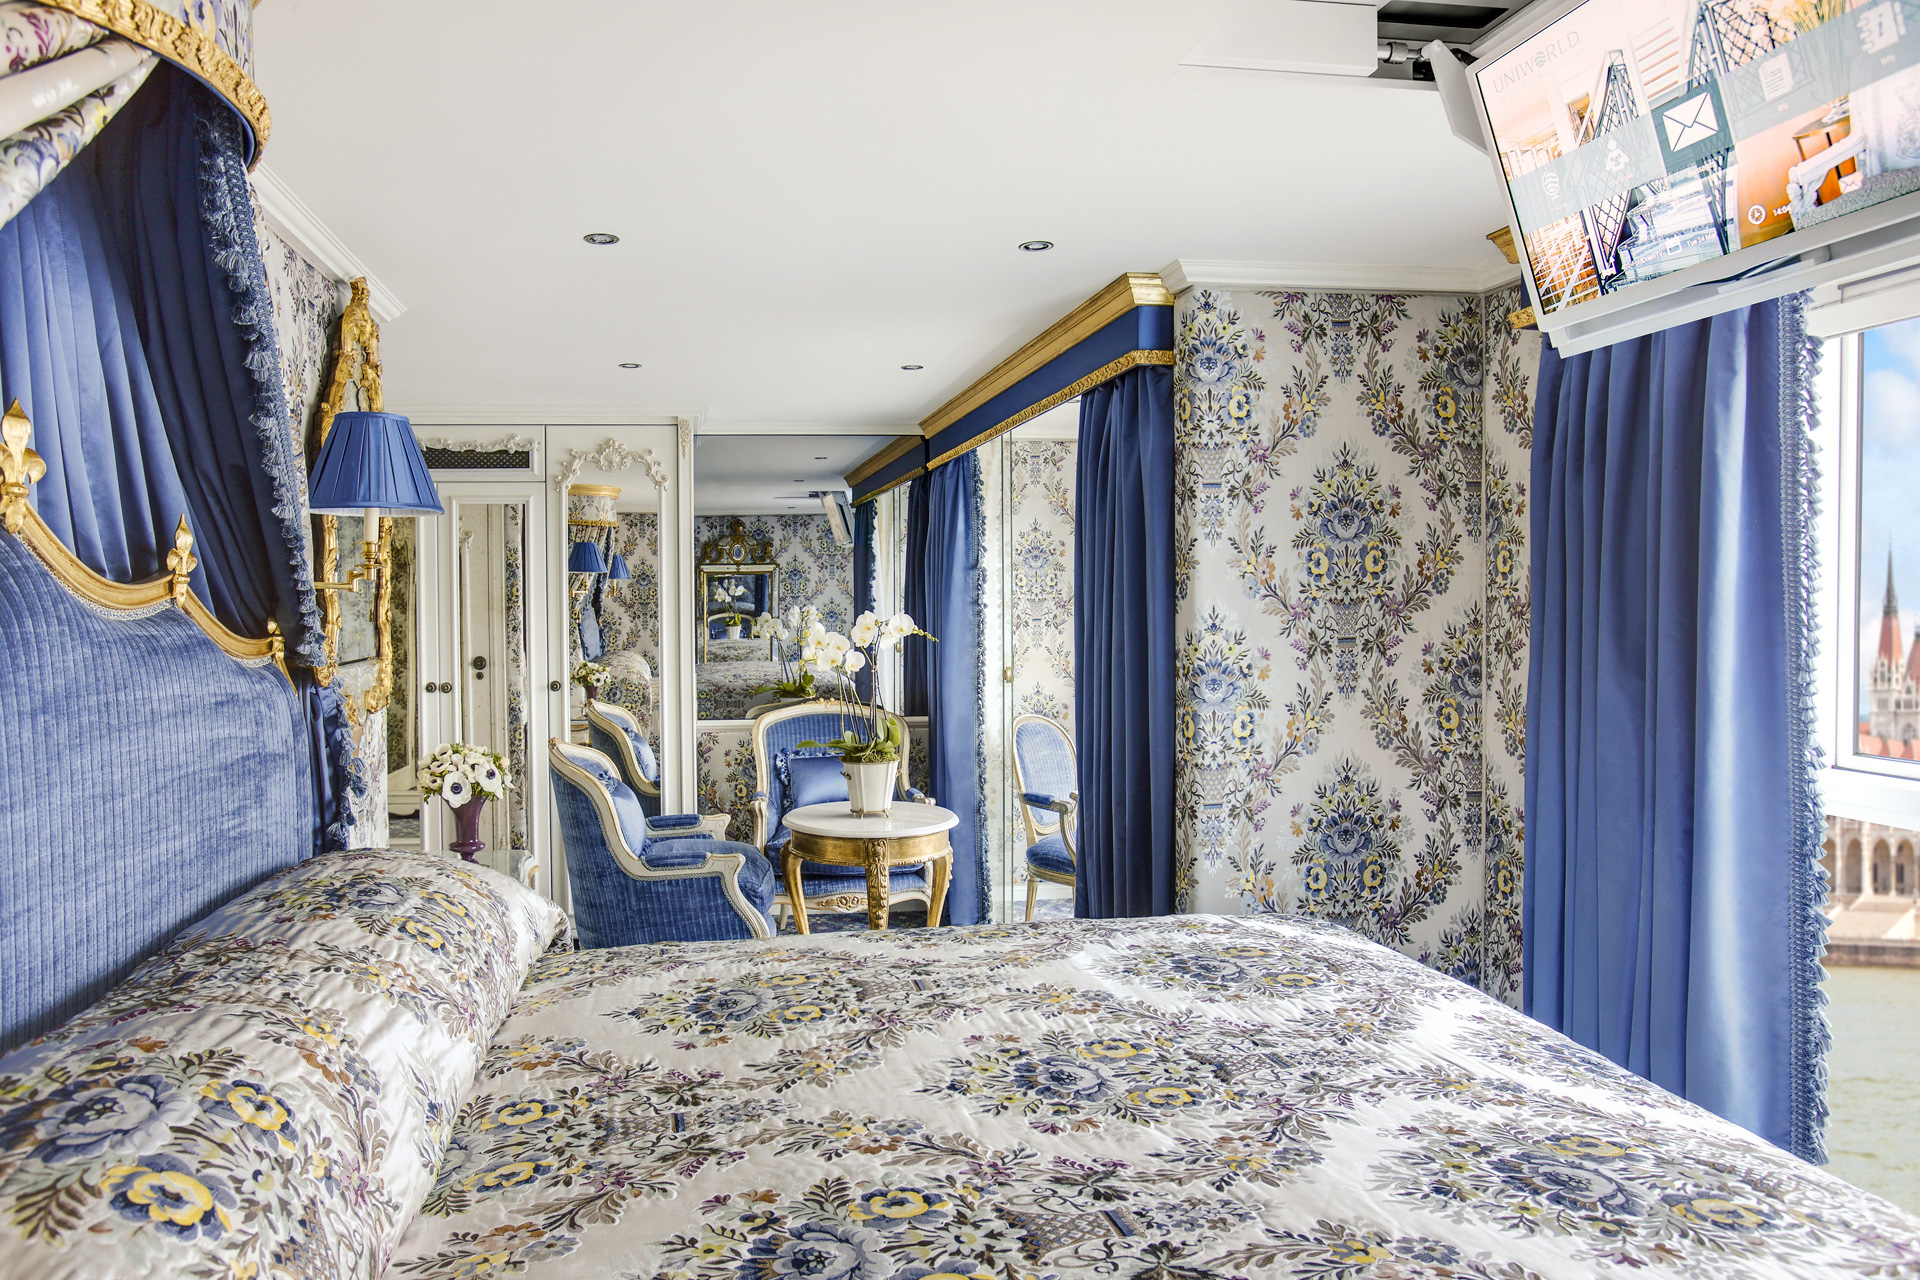 UNIWORLD Boutique River Cruises SS Maria Theresa Accommodation Suite 402 2.jpg